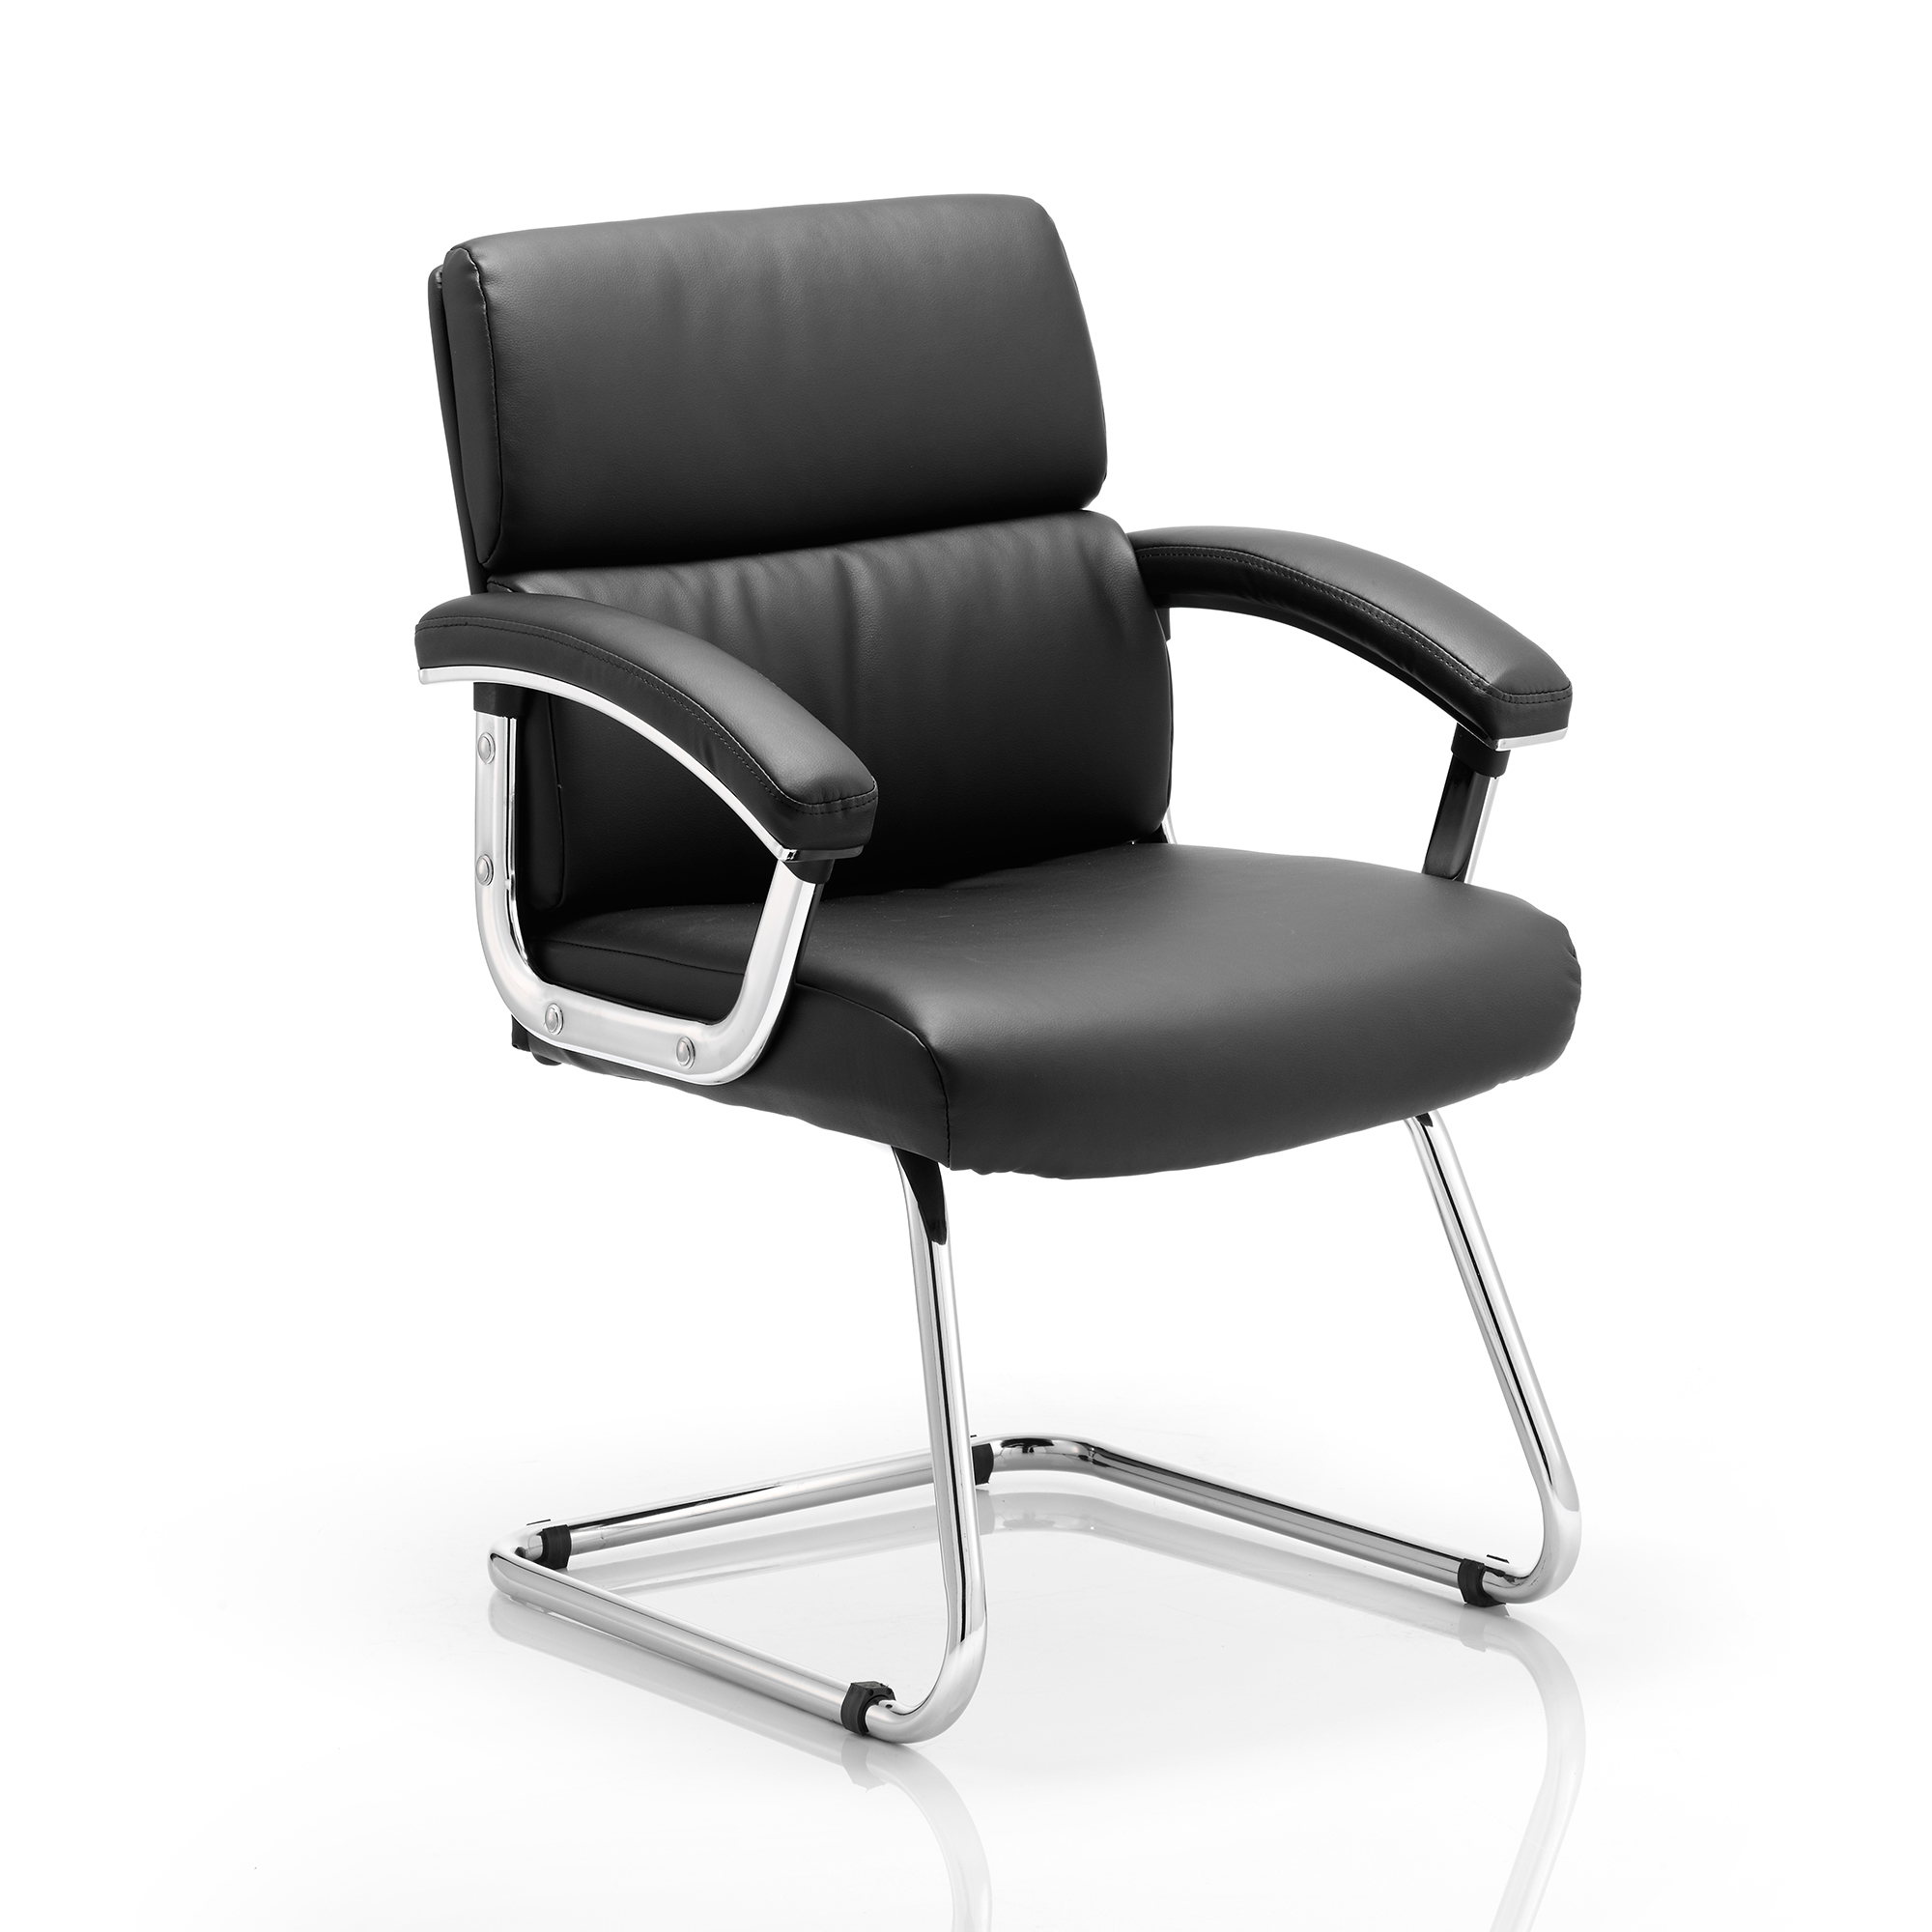 Sonix Desire Cantilever Chair With Arms Black Ref BR000033